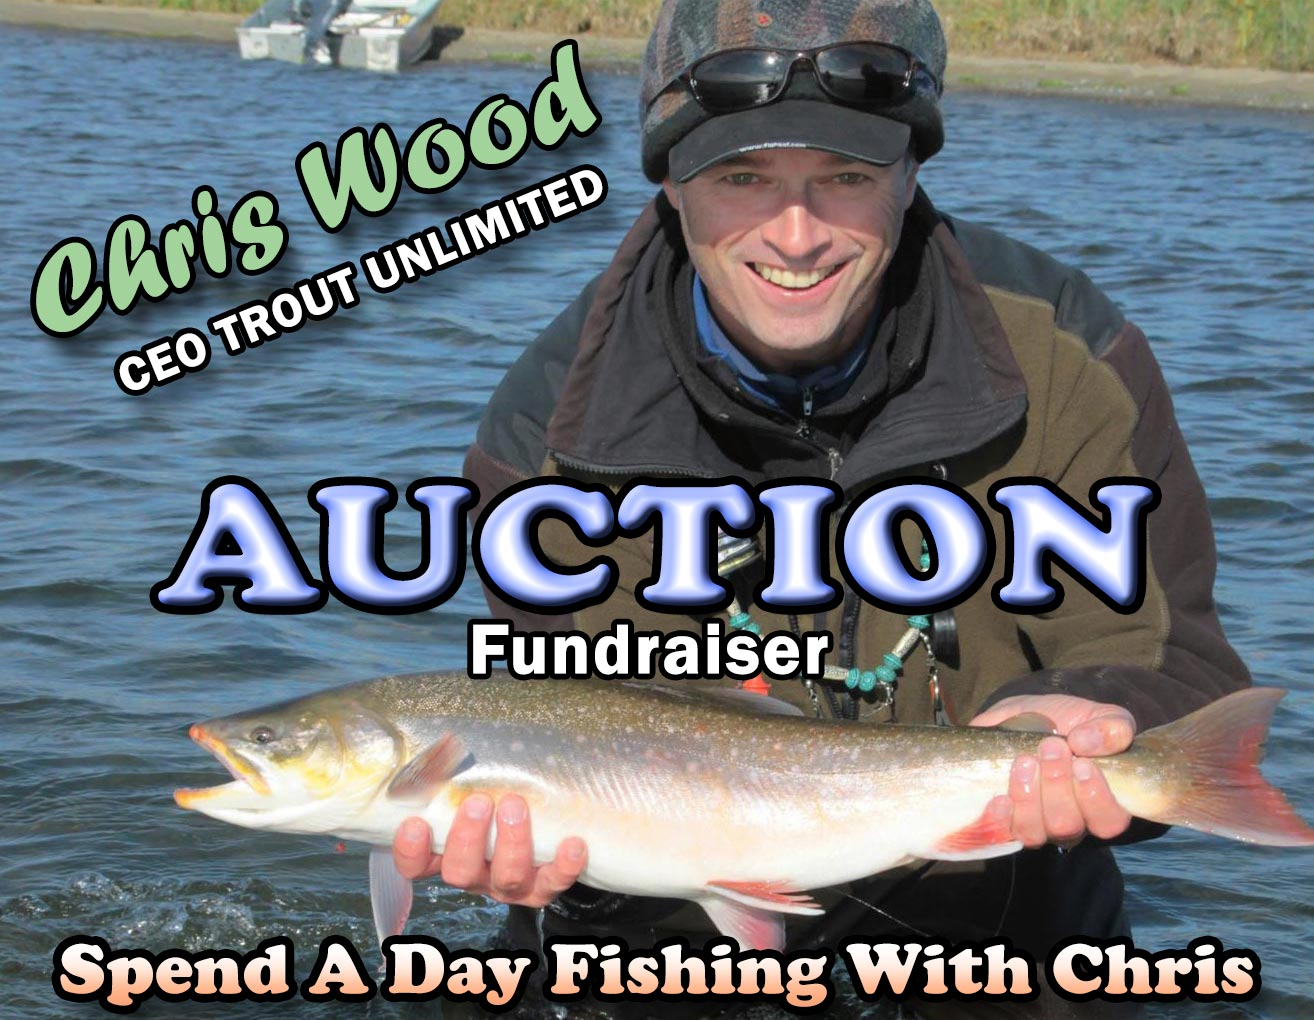 Join Chris Wood For A Day Of Fishing in Central PA. This Is A Fundraising Event To Support PA Council Of Trout Unlimited.